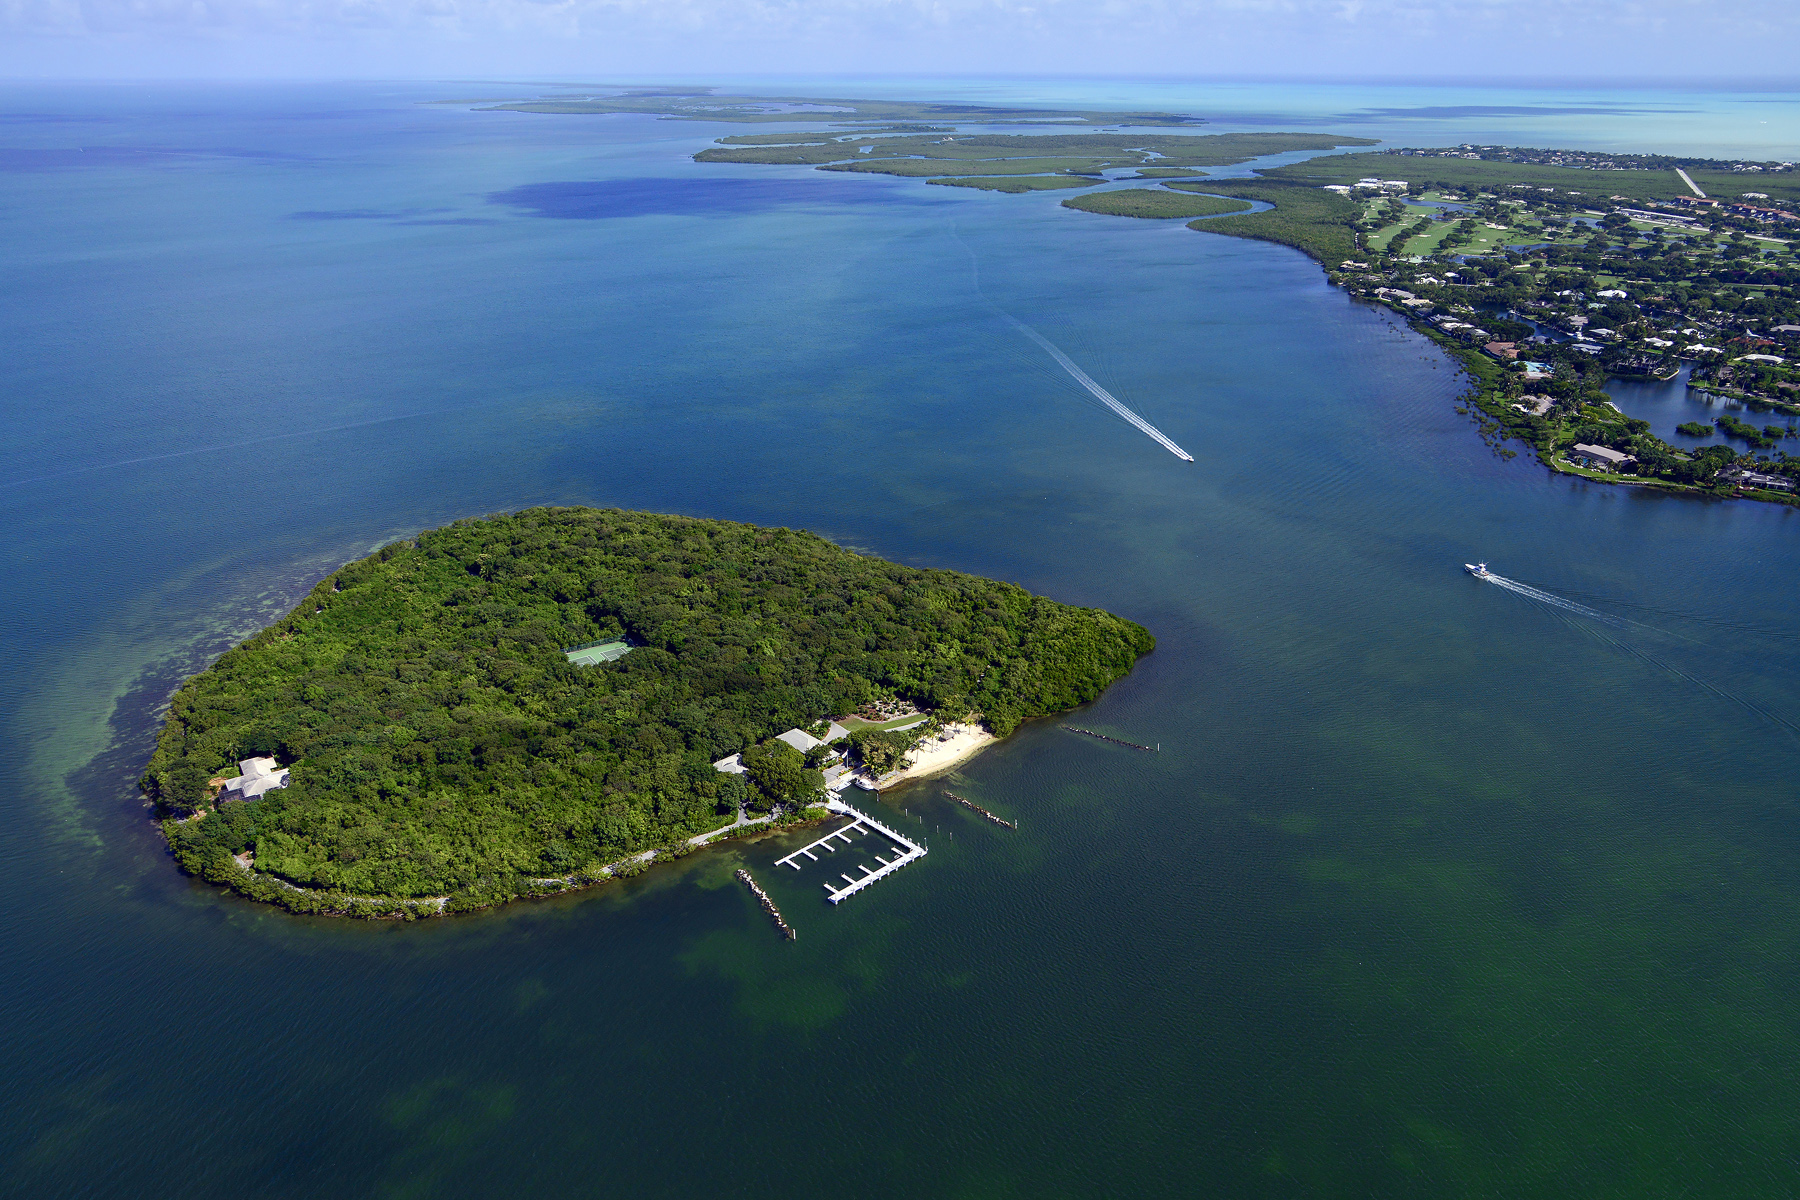 Isla privada por un Venta en Pumpkin Key - Private Island in the Florida Keys Key Largo, Florida 33037 Estados Unidos